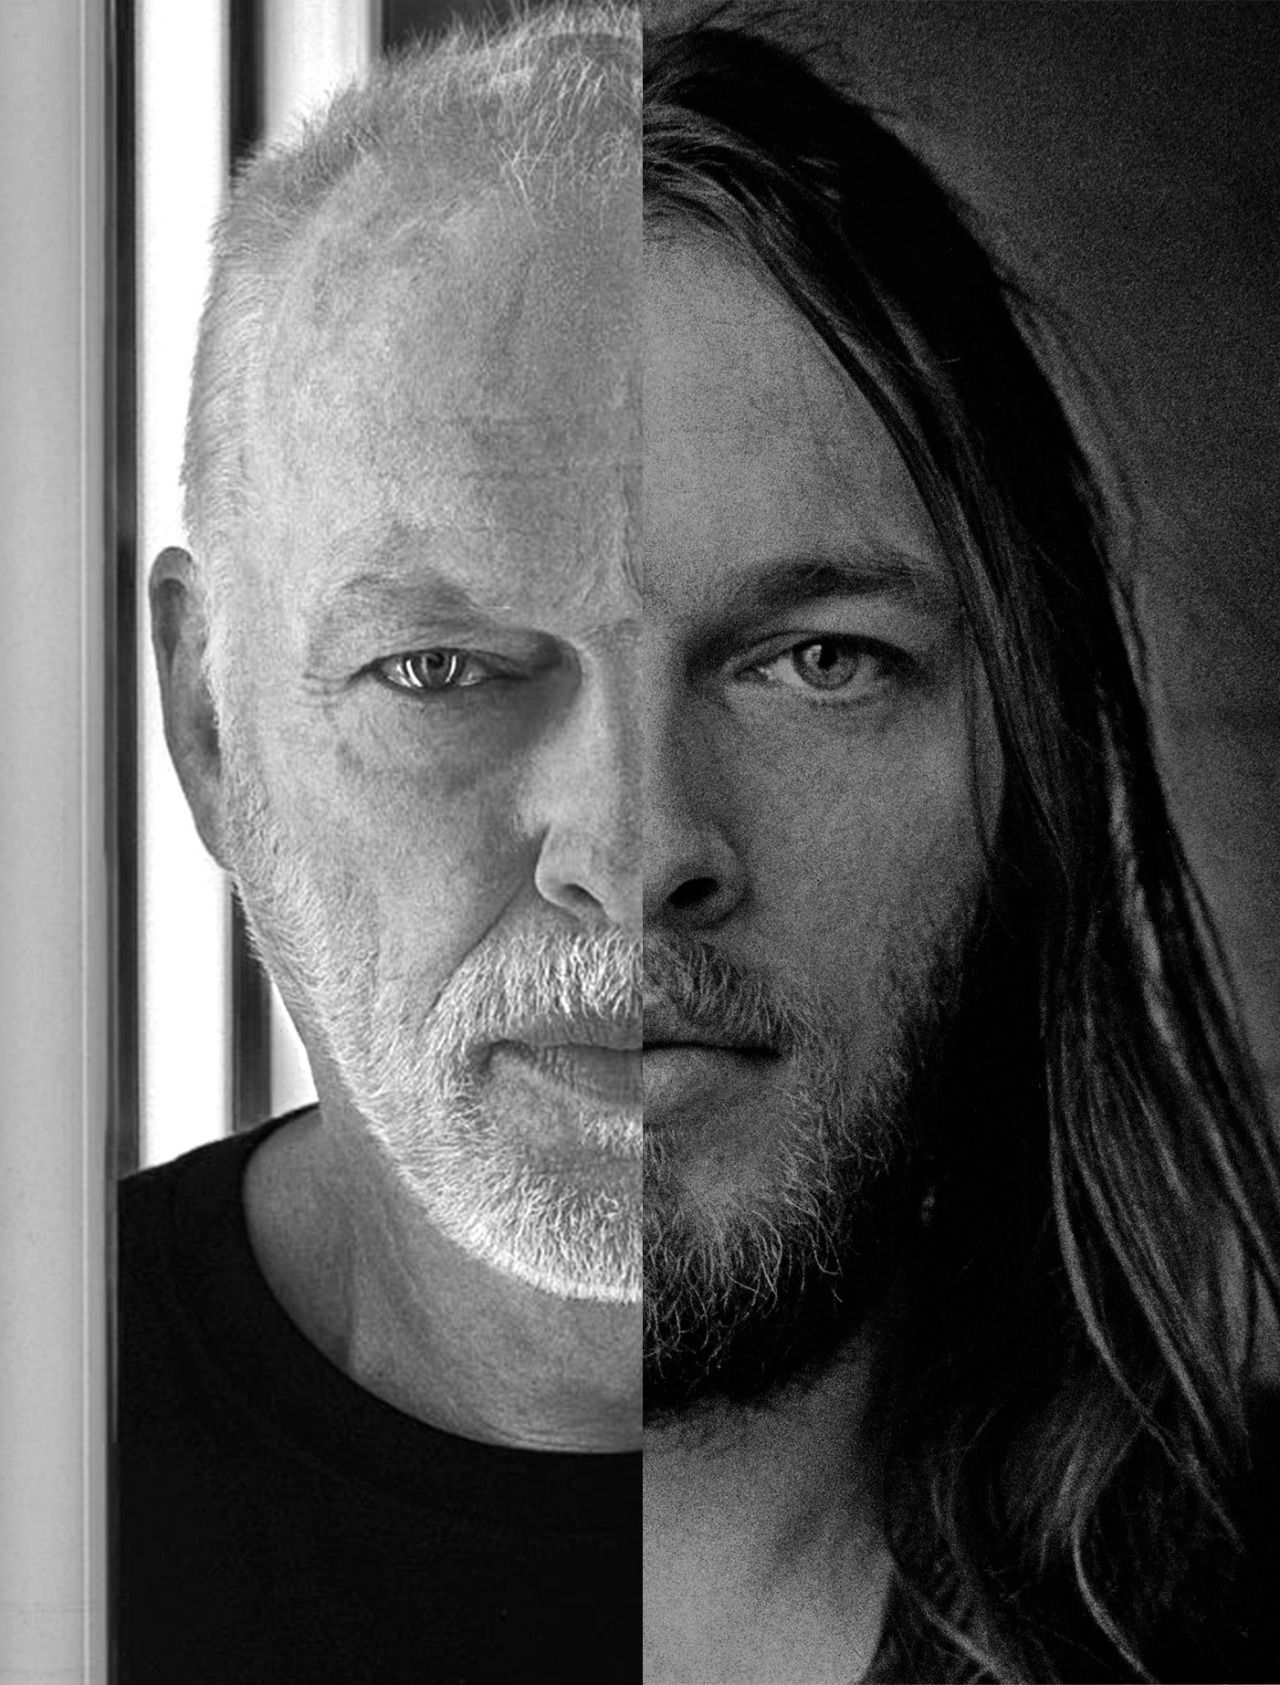 lyrics by heart david gilmour now and then pink floyd in 2019 david gilmour pink floyd. Black Bedroom Furniture Sets. Home Design Ideas